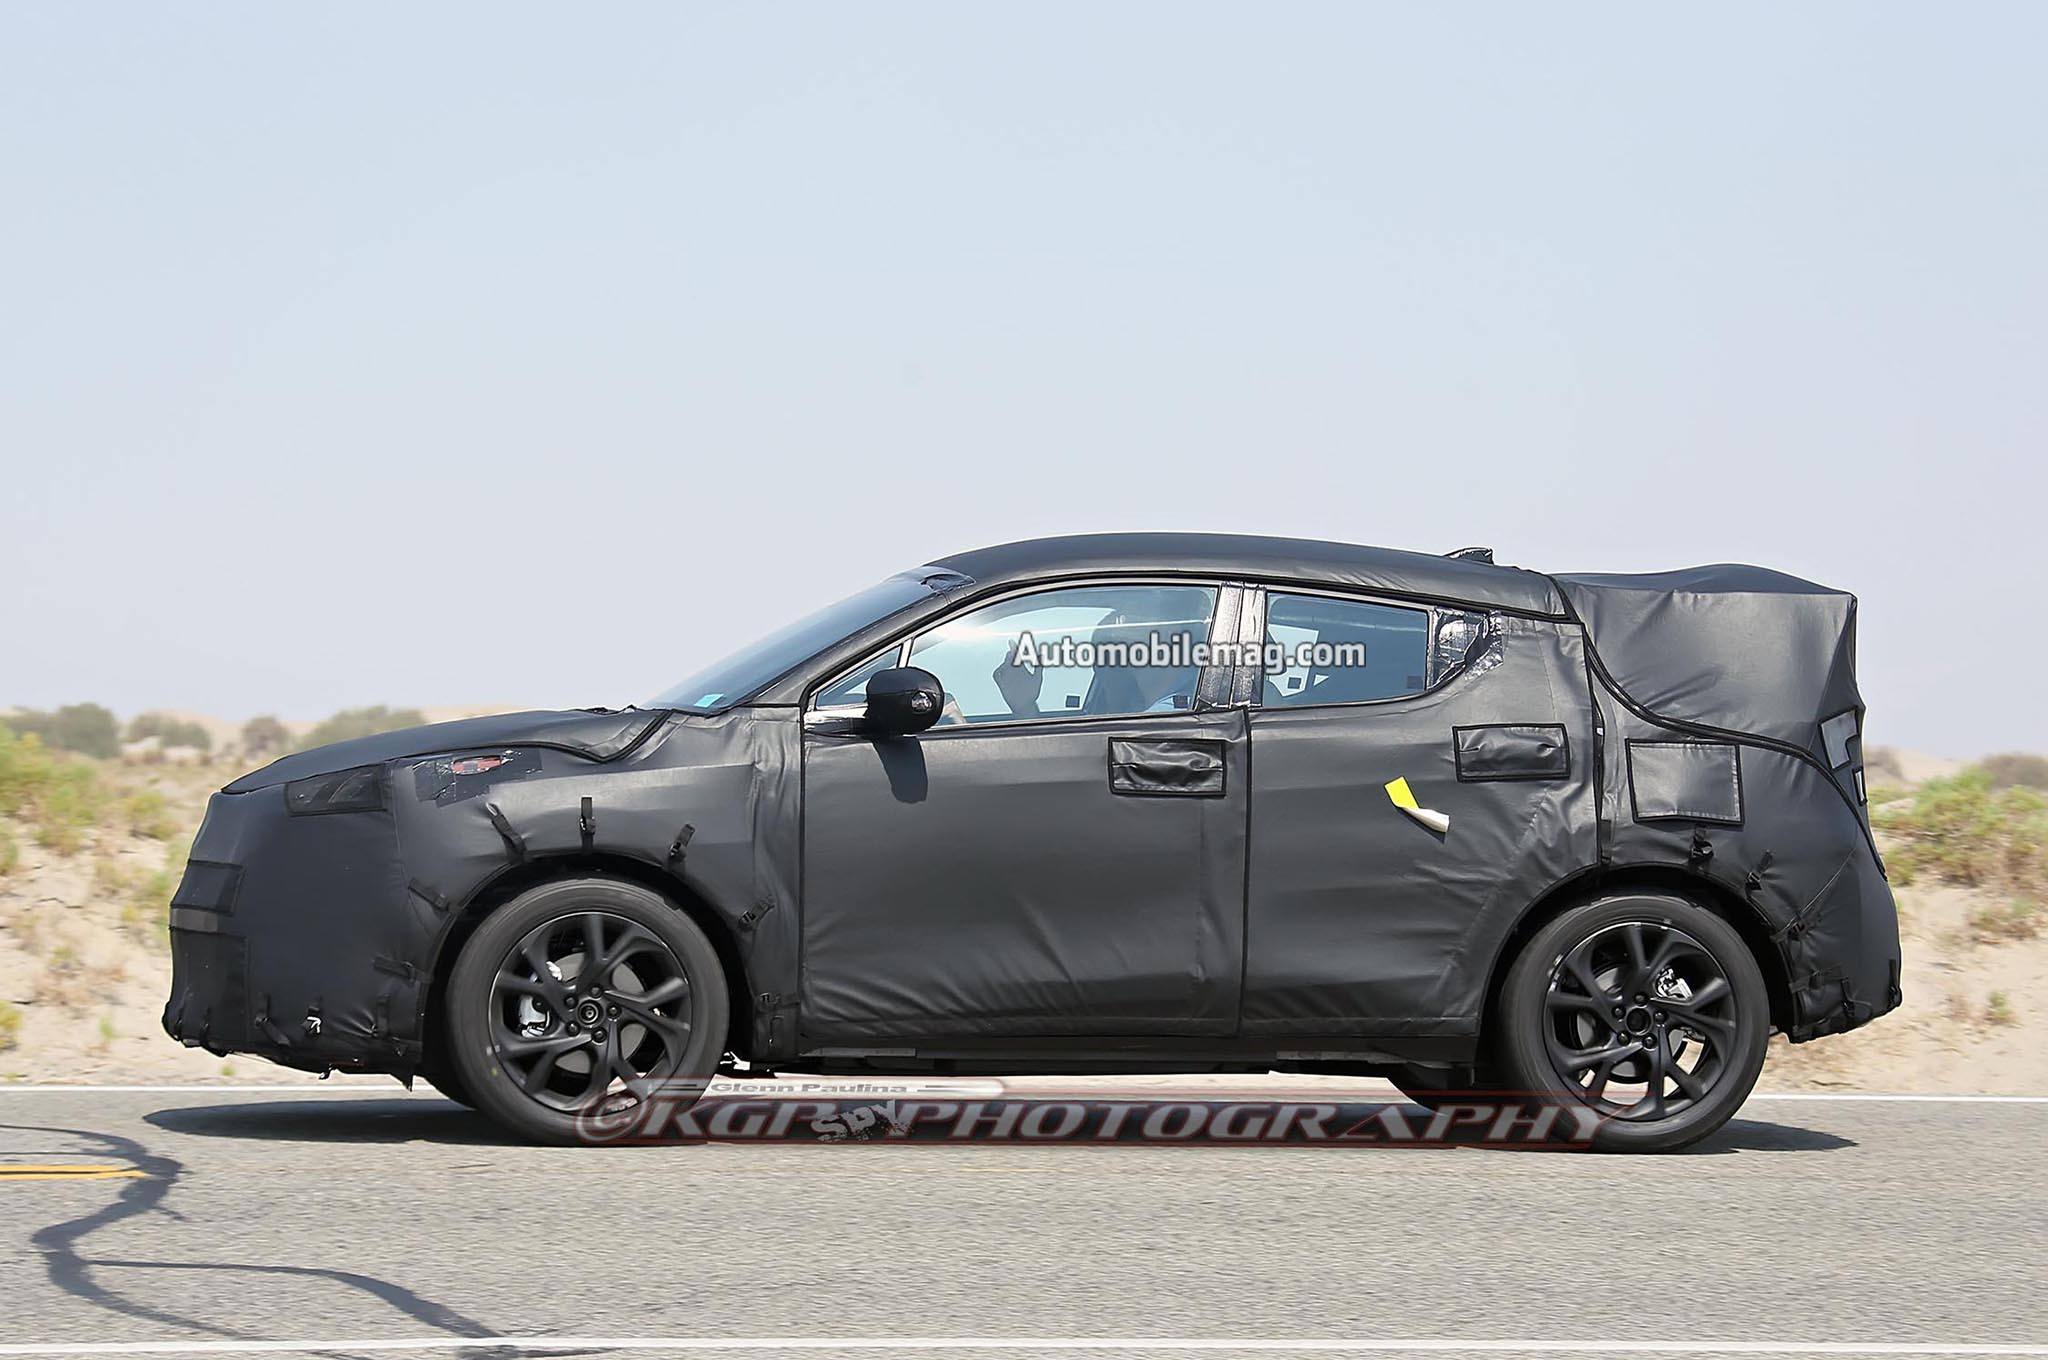 Toyota Subcompact Crossover Spied Profile 02